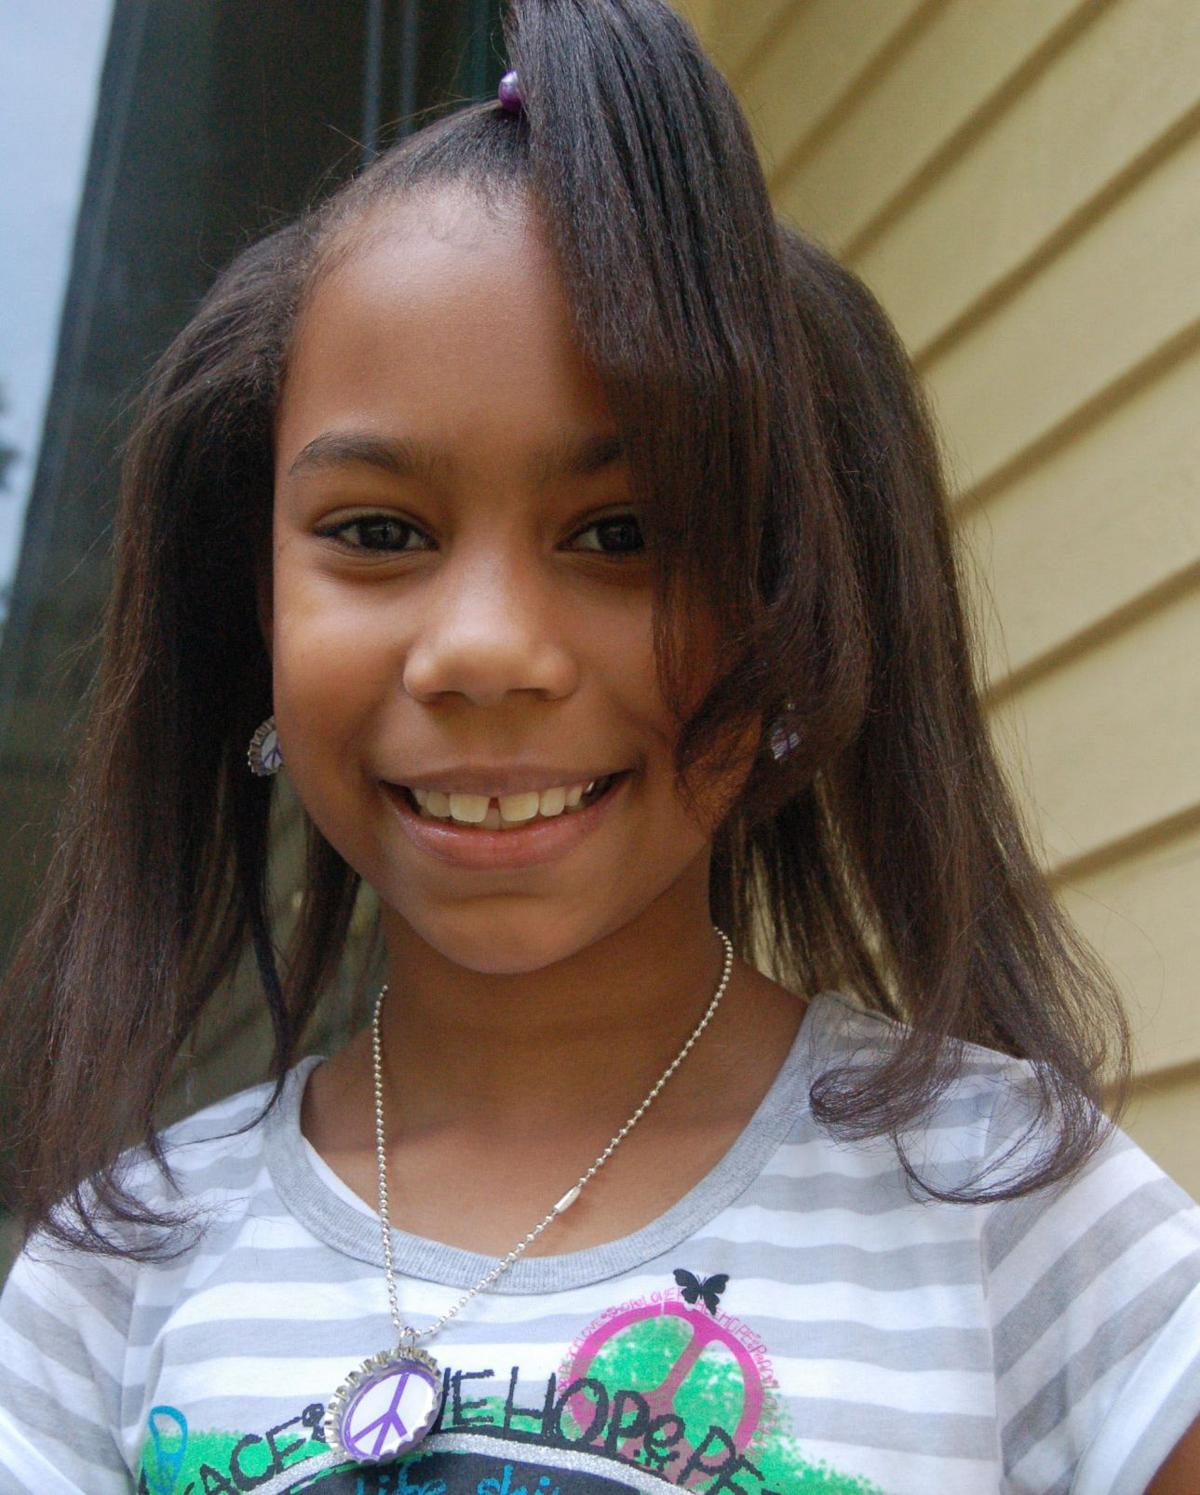 9-year-old girl sells jewelry with a cause